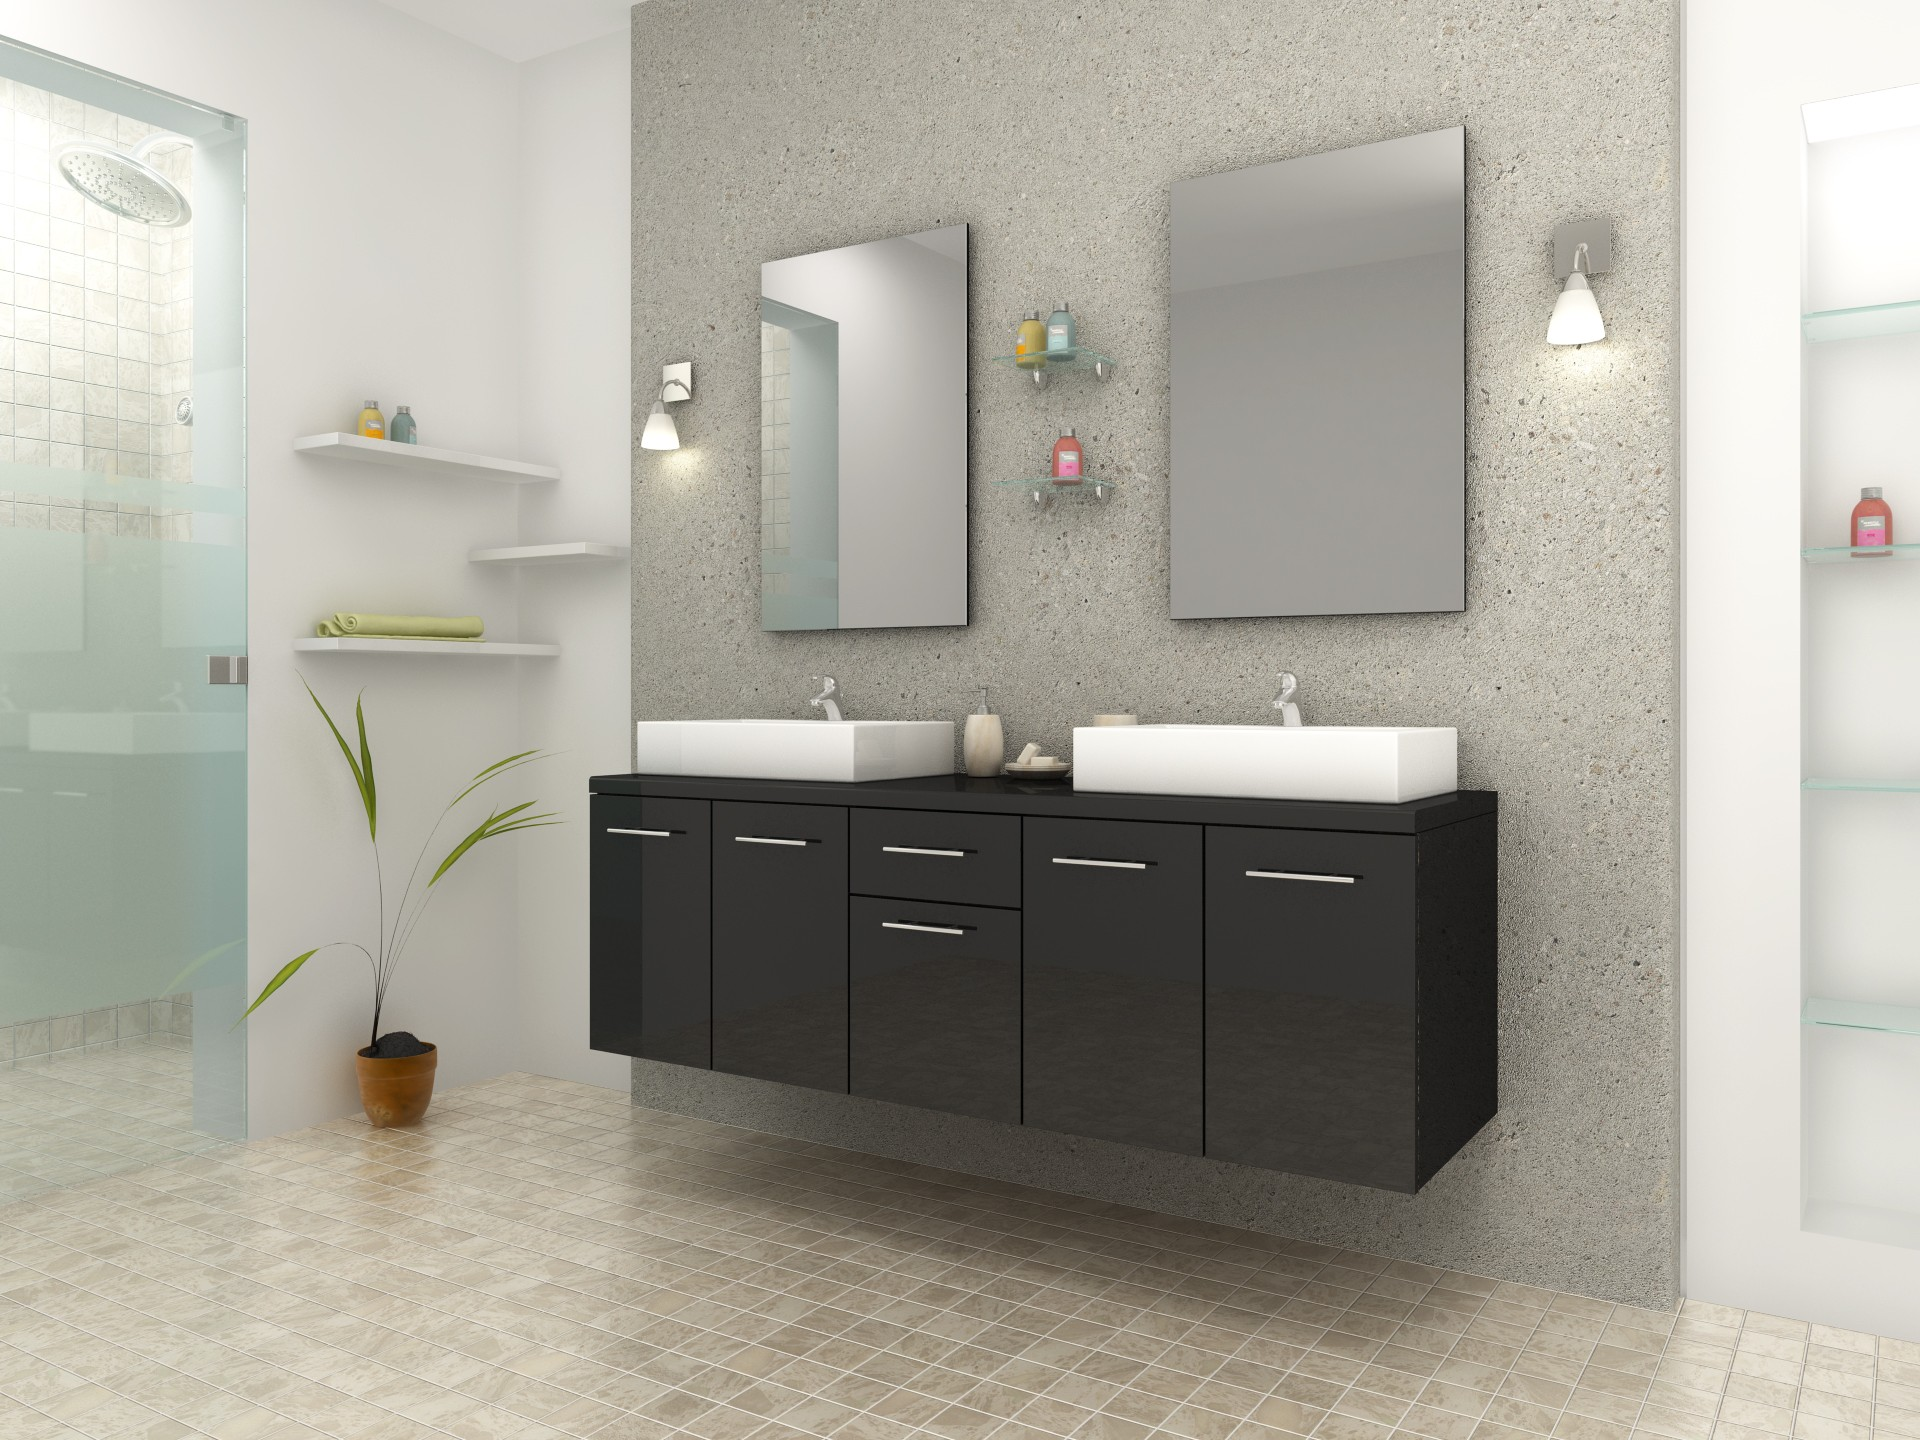 Salle de bain travertin gris for Petit meuble double vasque